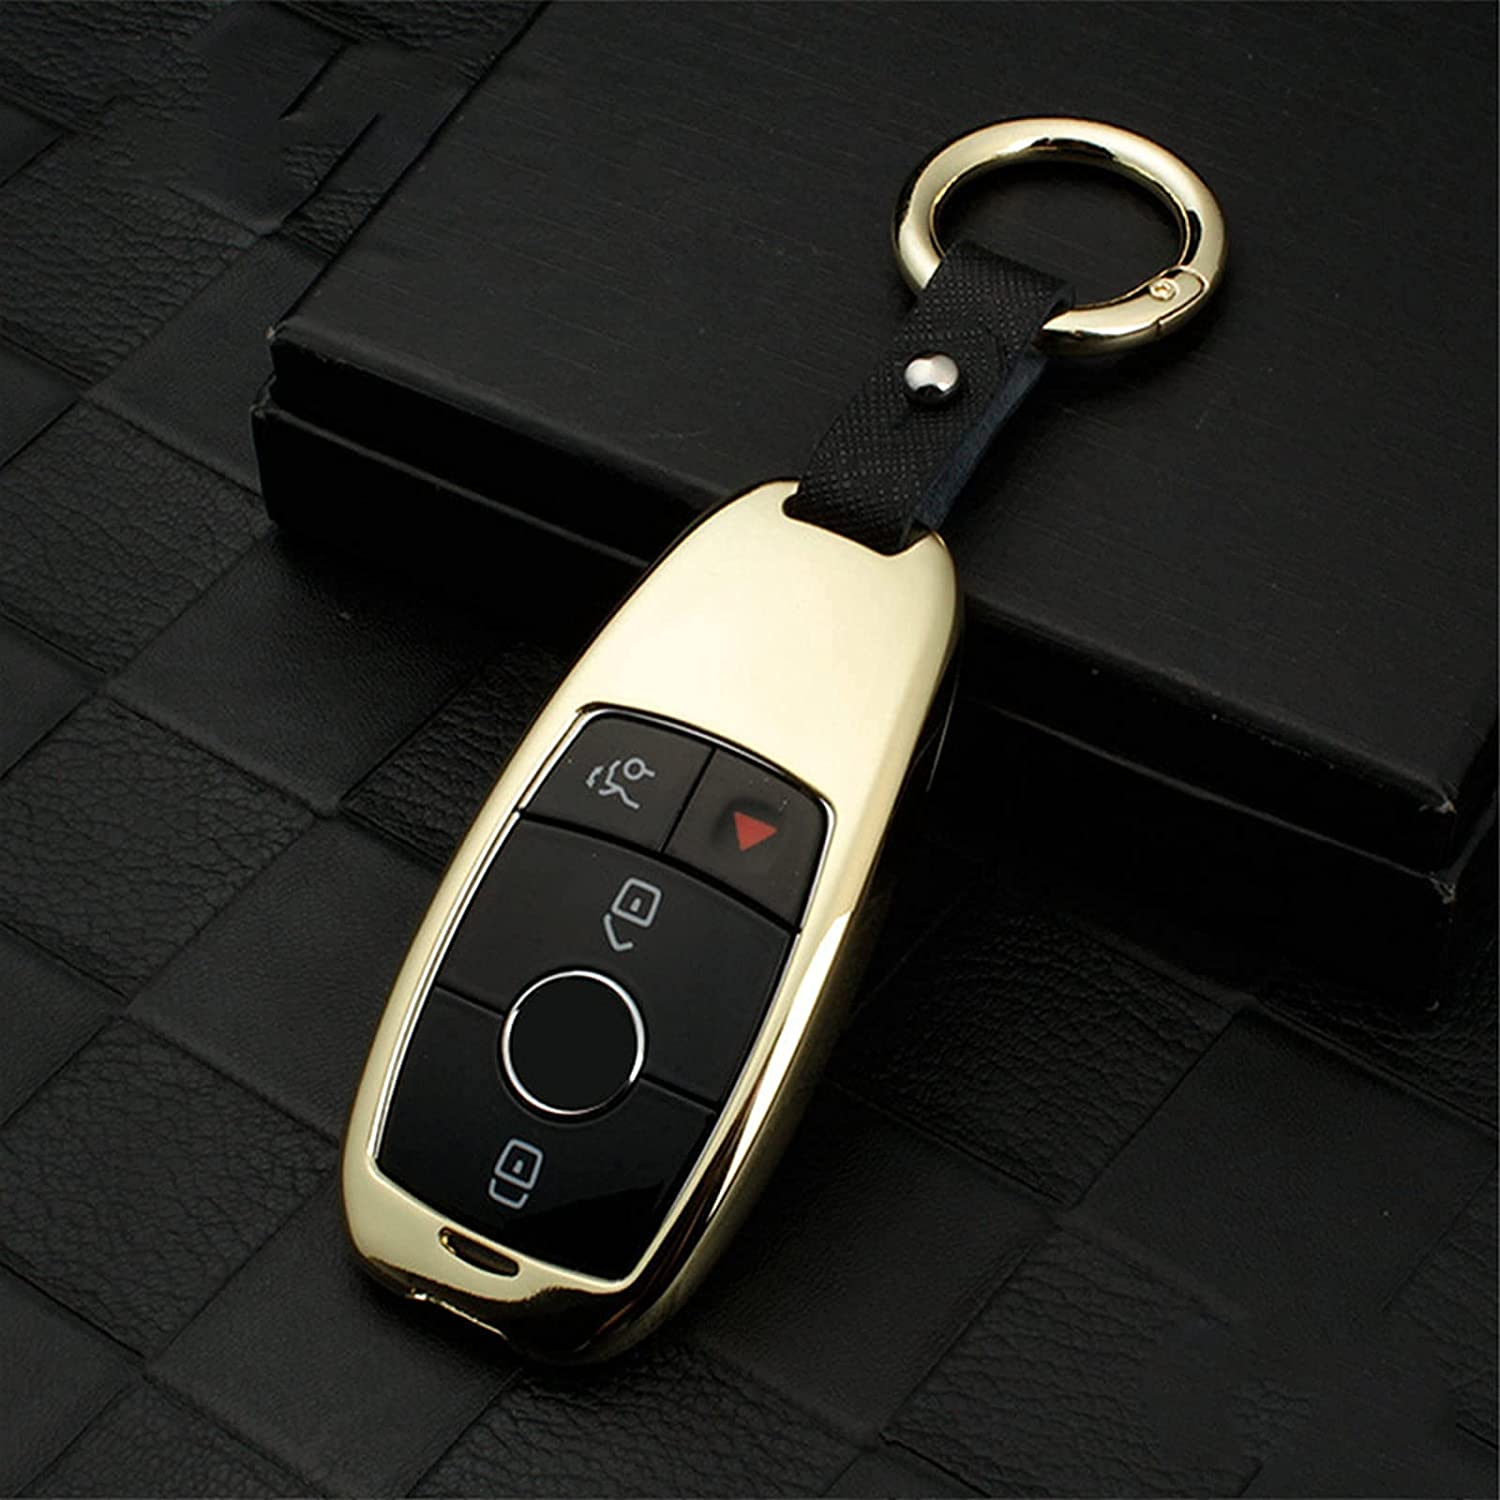 Zinc Alloy Car Key Cash special price Deluxe Cover Case for W2 W213 E Mercedes Benz Class